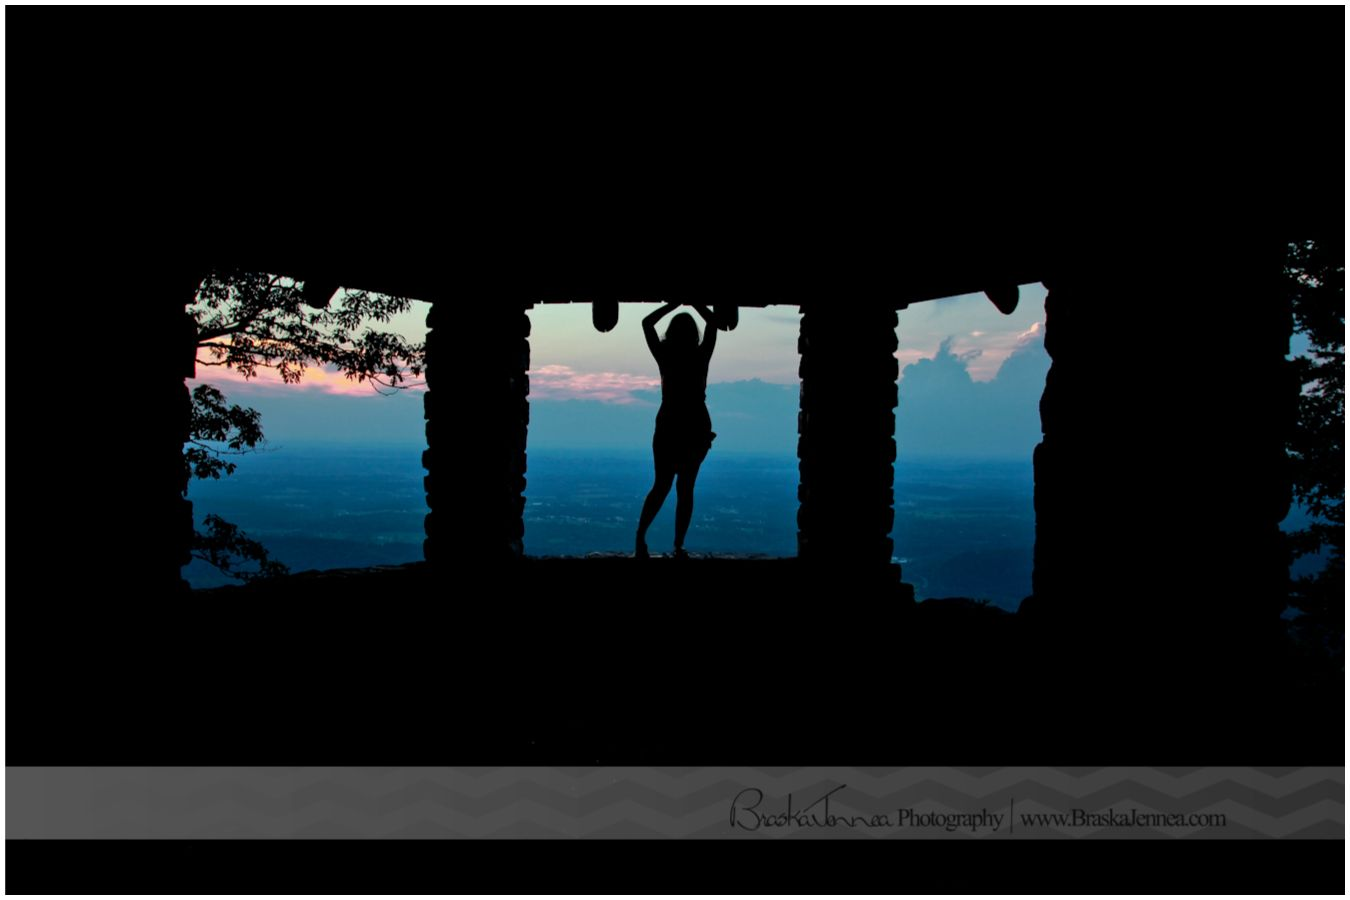 I live for silhouettes! Especially when a gorgeous sunset is involved!